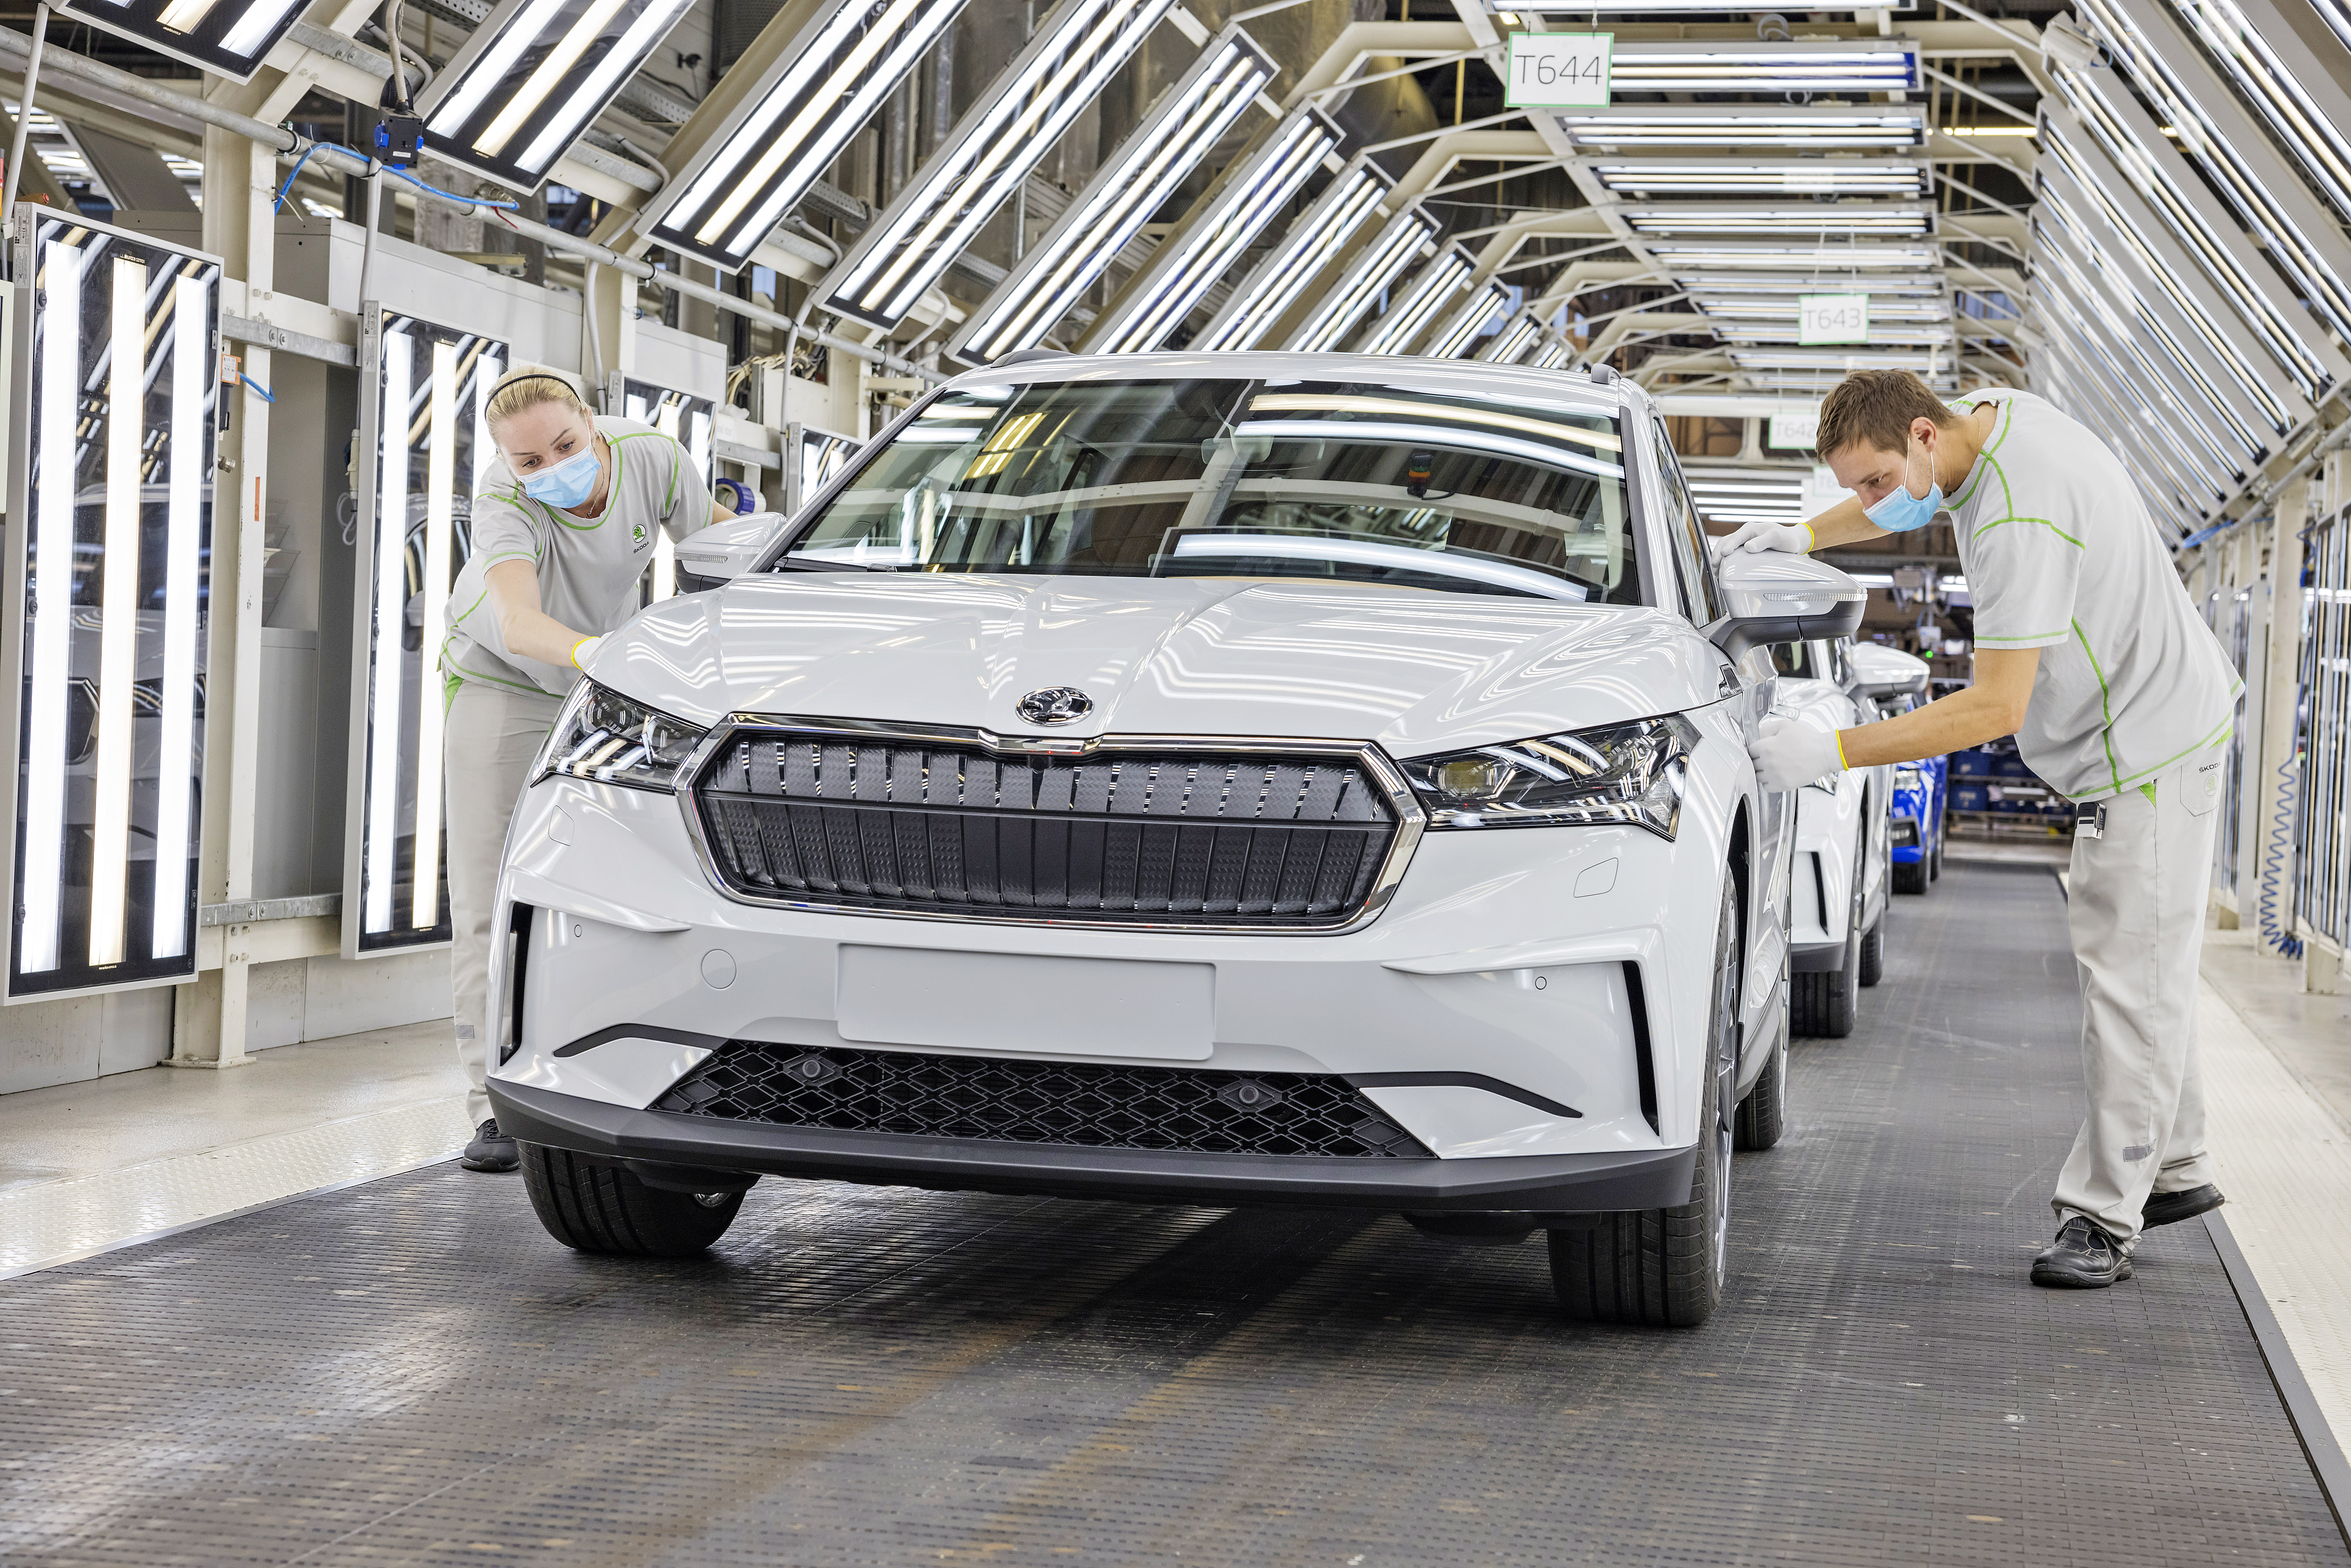 SKODA AUTO launches series production of the ENYAQ iV at its main plant in Mladá Boleslav - Image 2